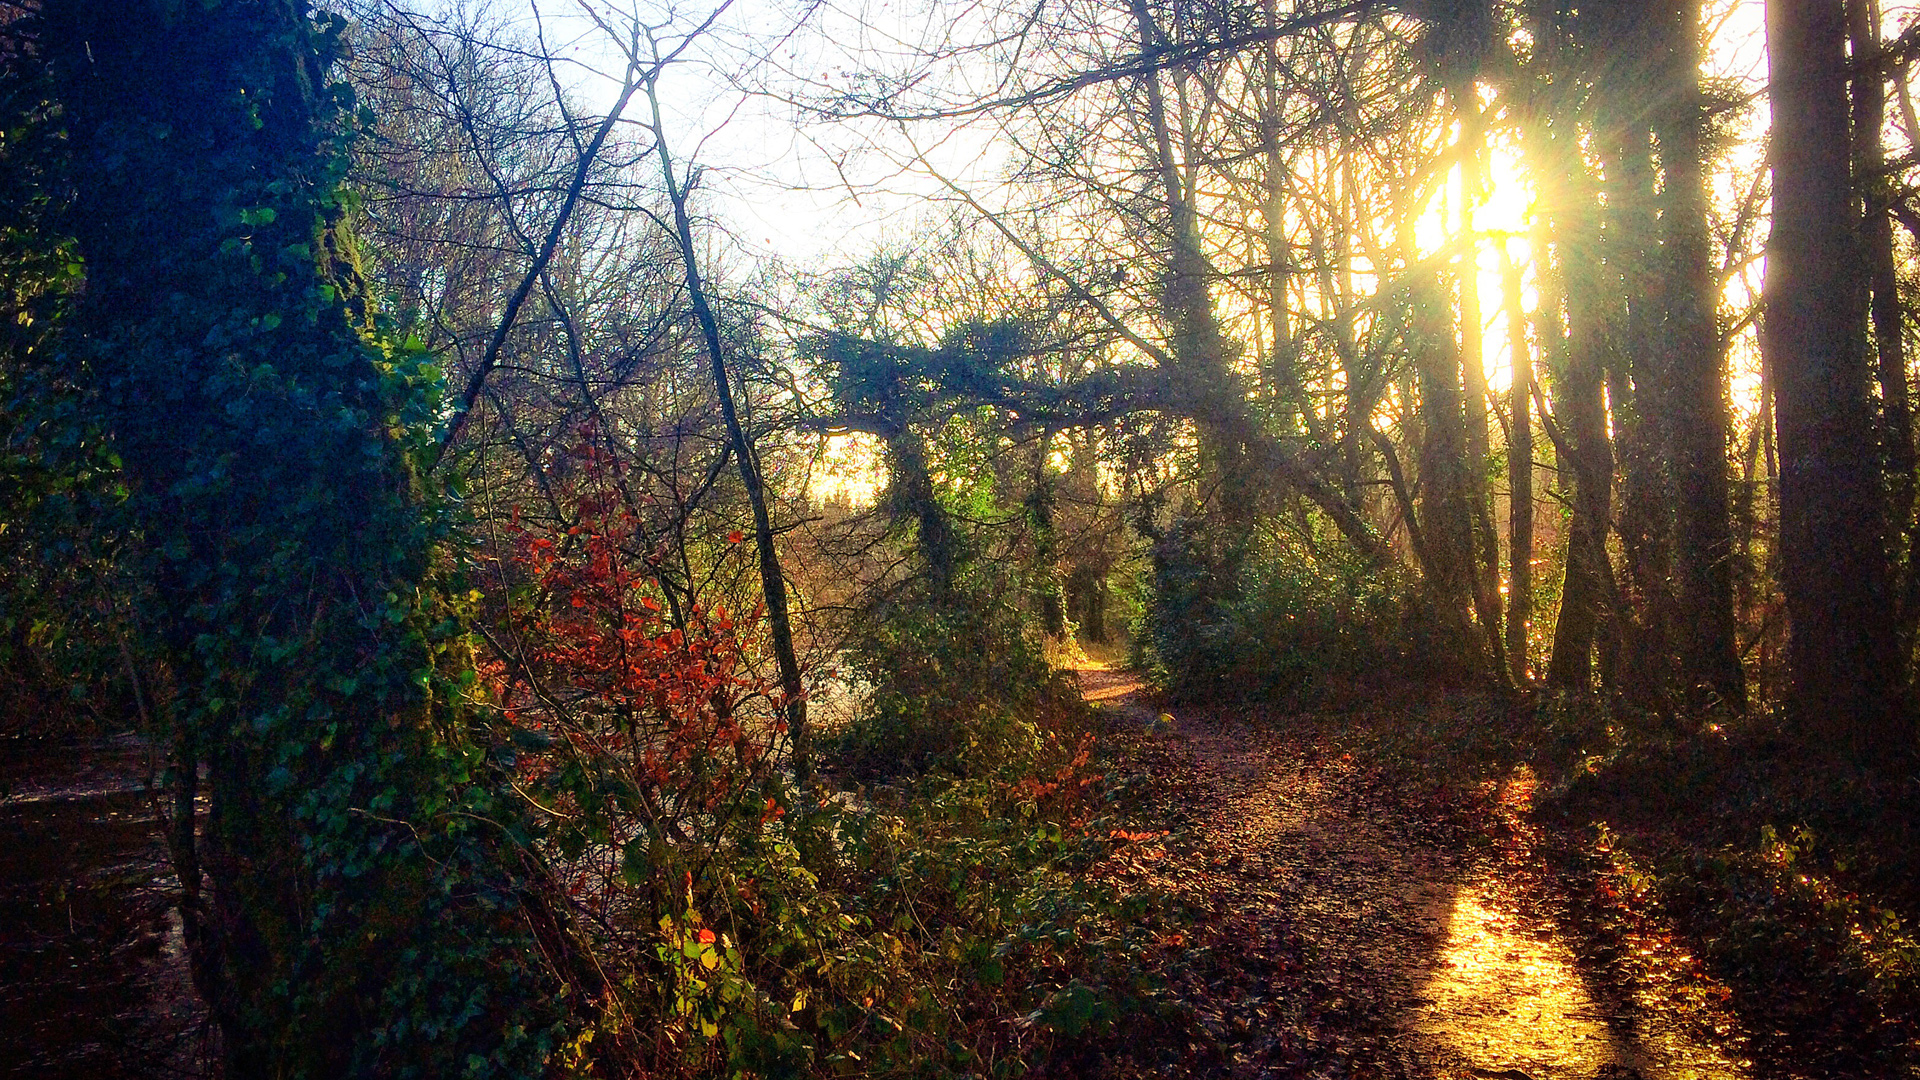 Dunmore Wood – January 6th 2018